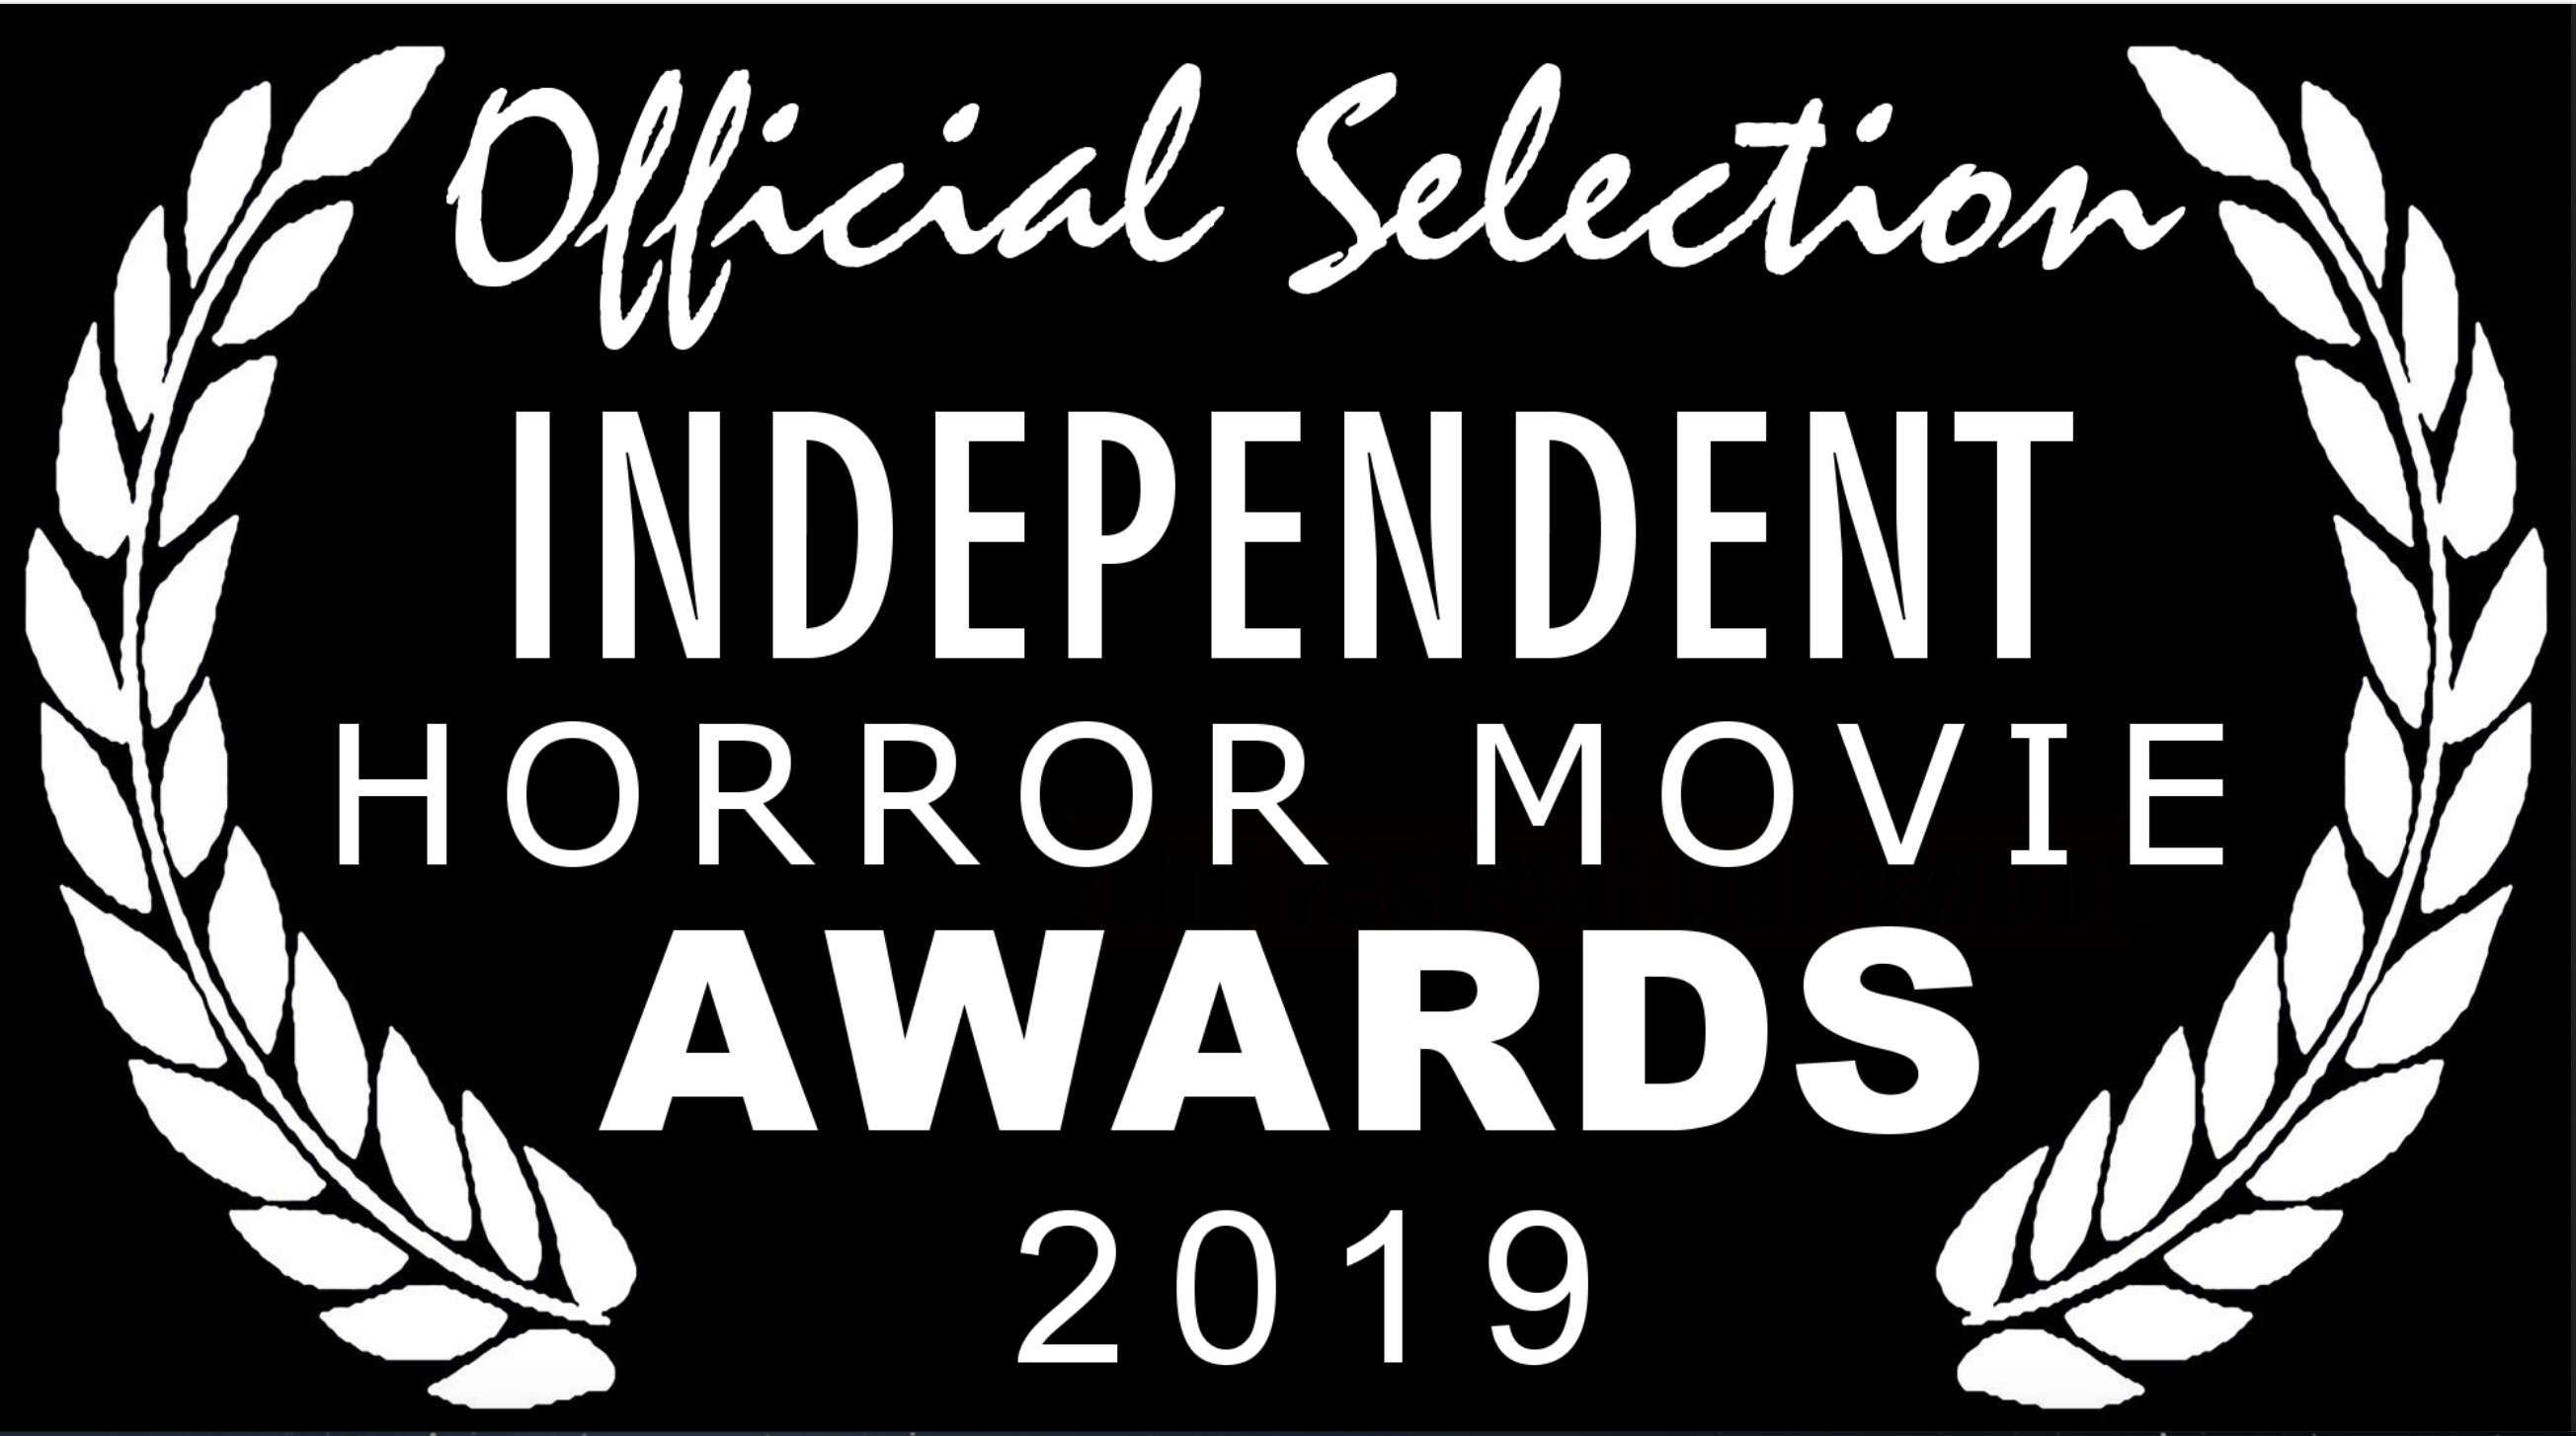 Independent Horror Movie Awards Official selection